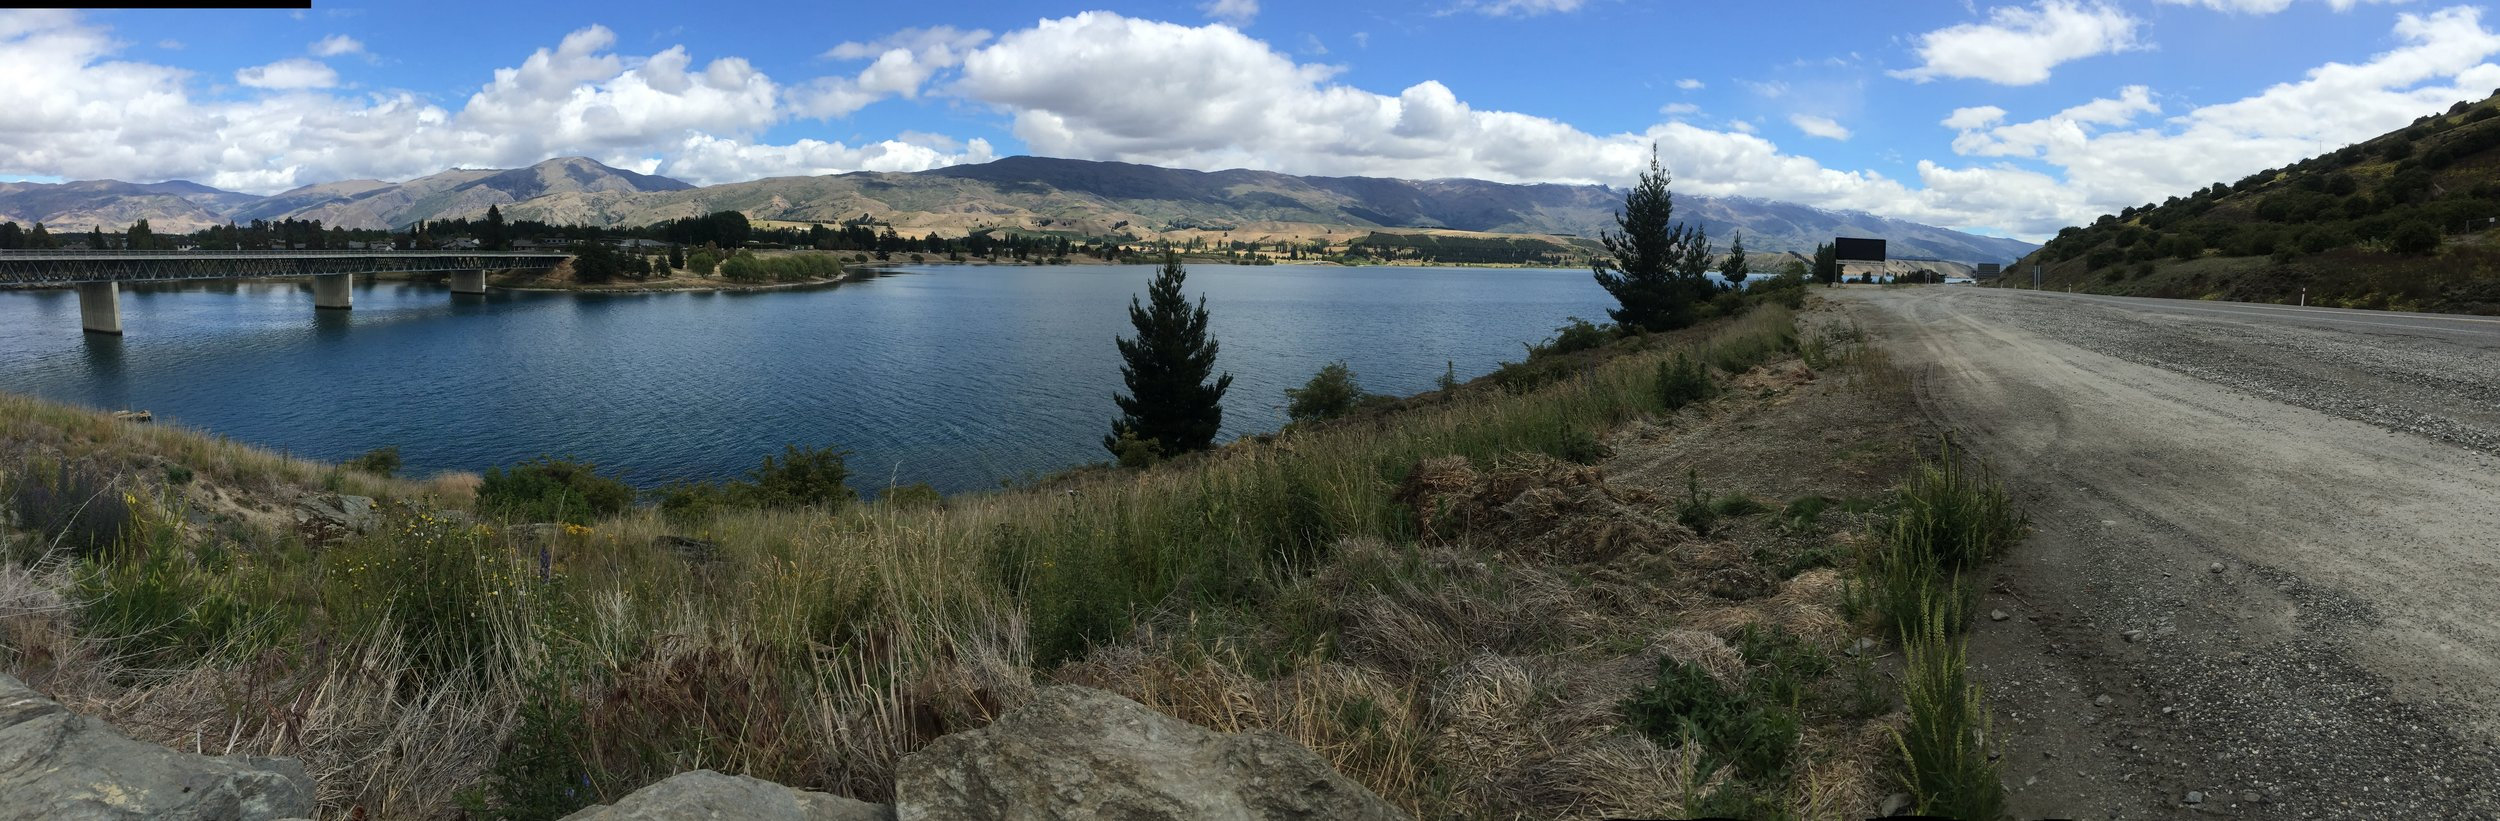 SCENIC LOOK OUT ENROUTE TO LAKE TEKAPO FROM QUEENSTOWN